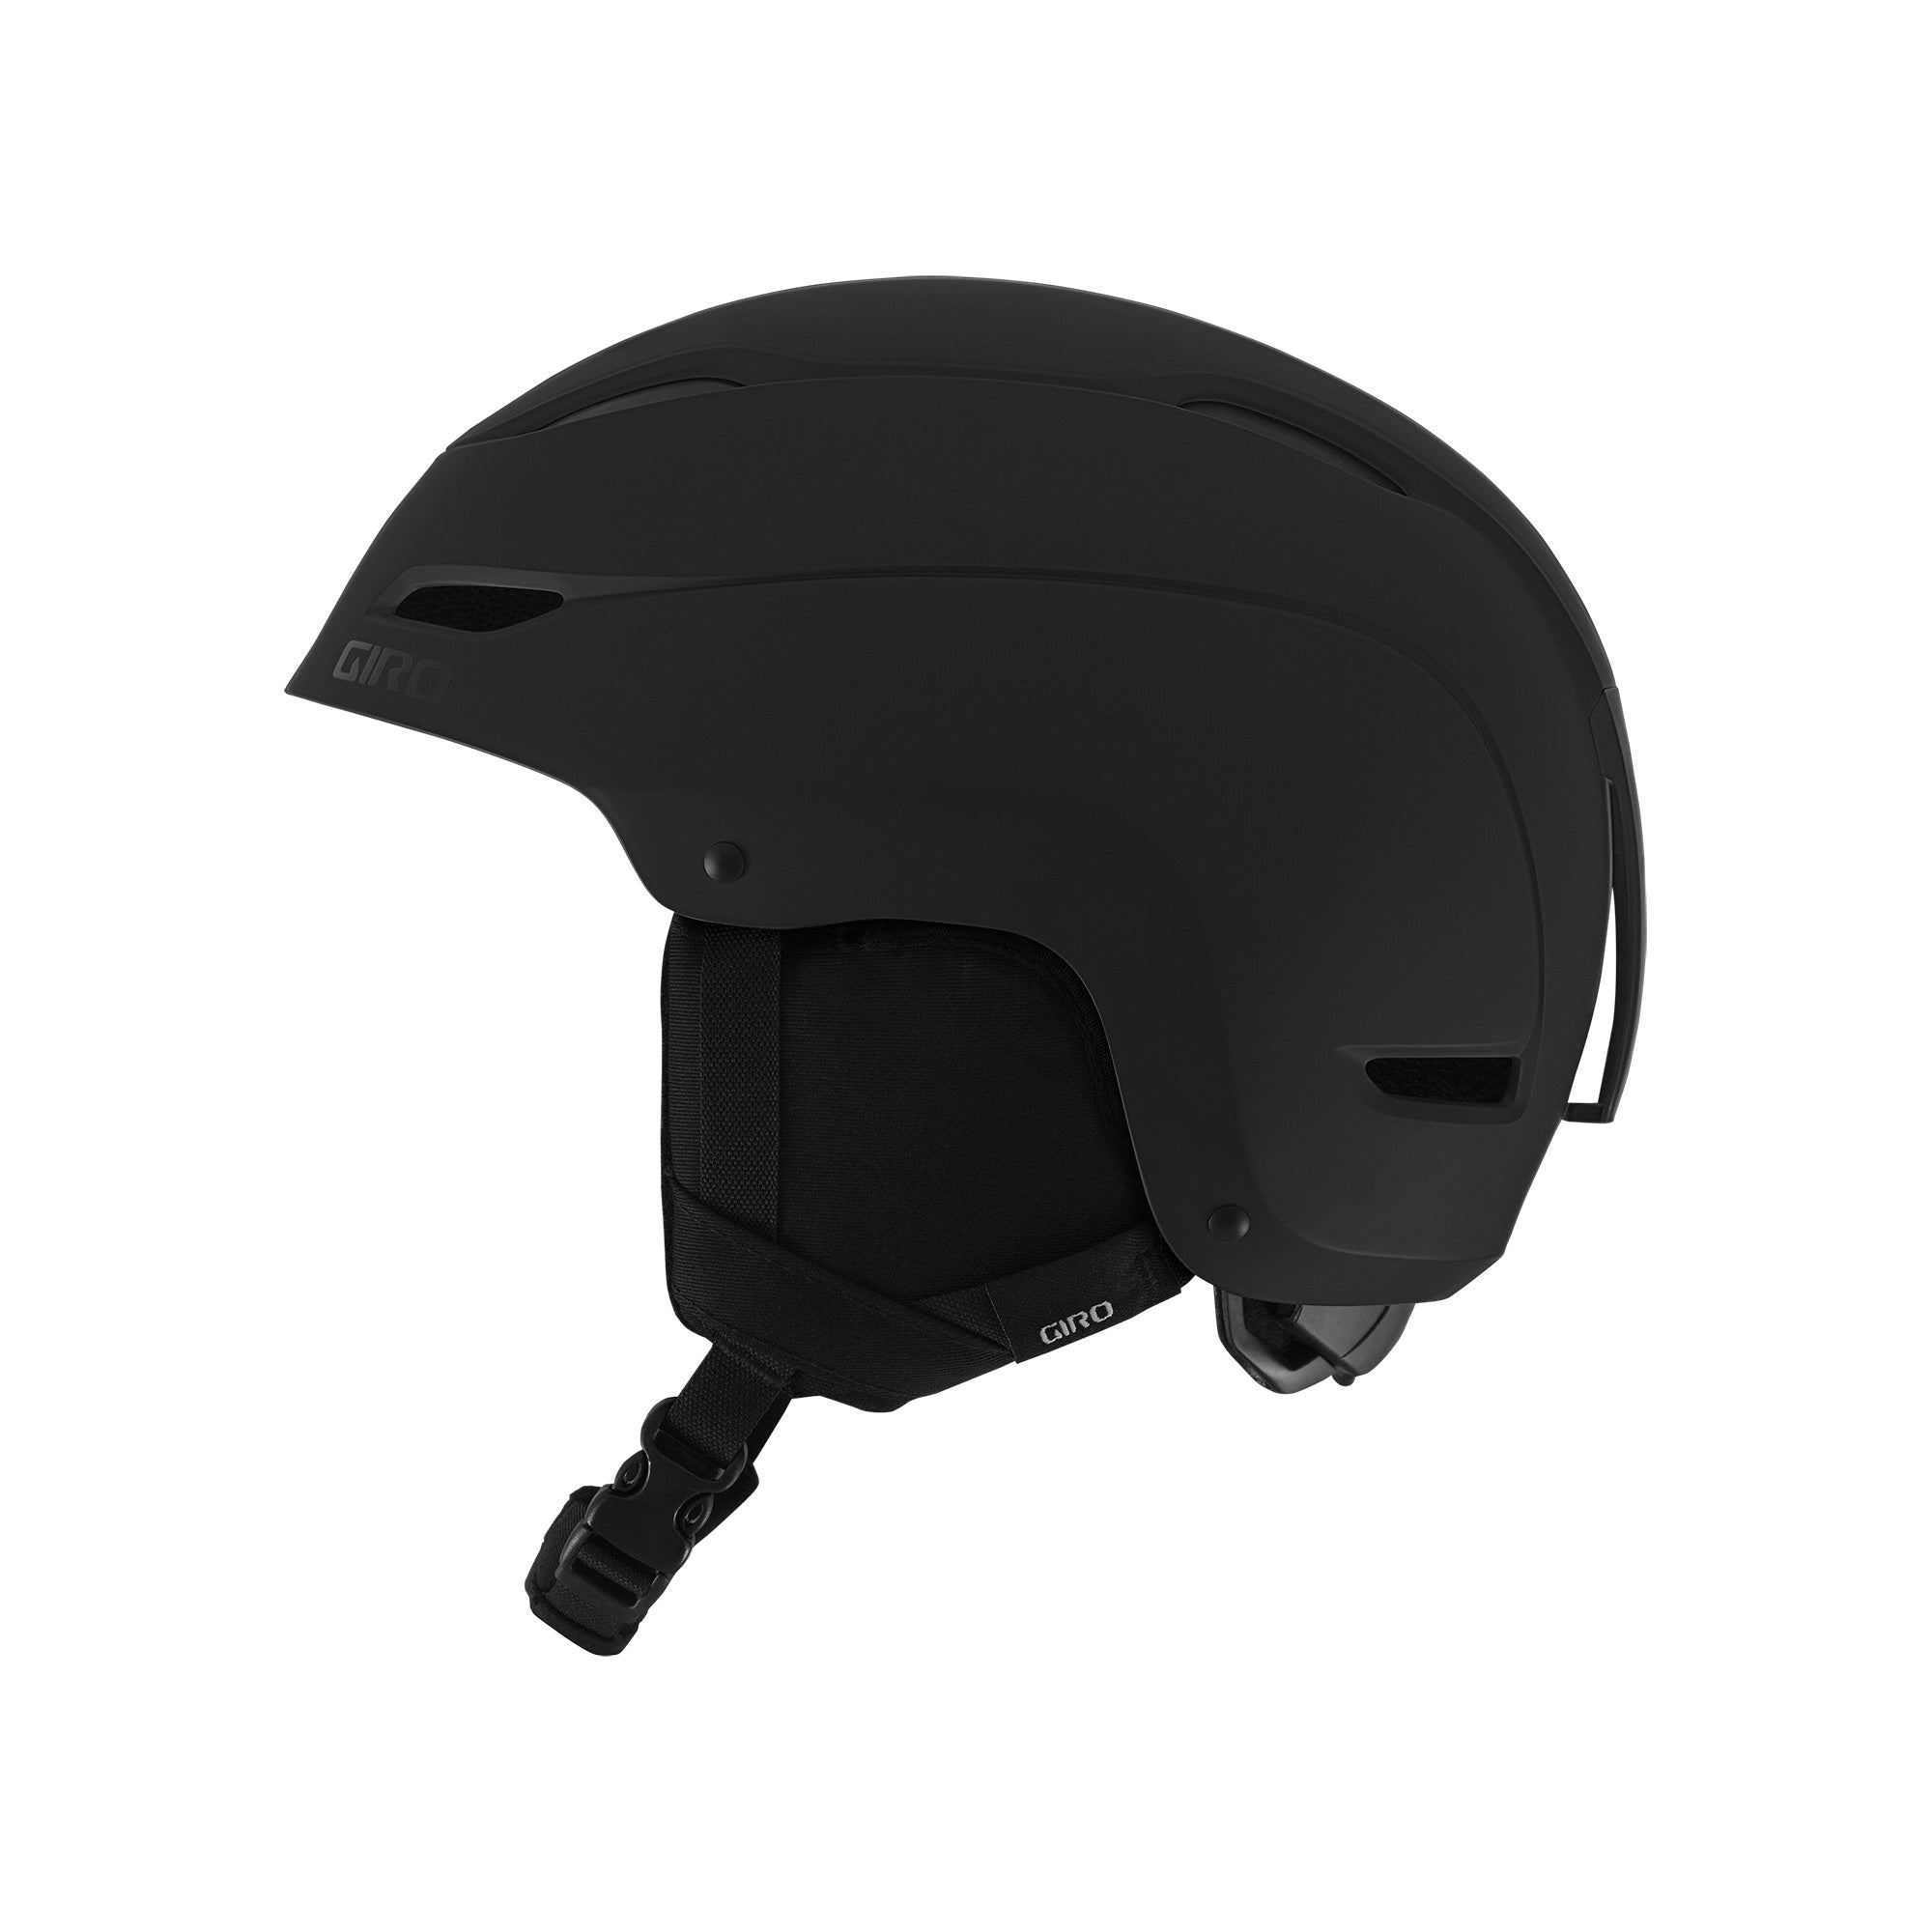 Giro Ratio Ski Helmet - Matt Black